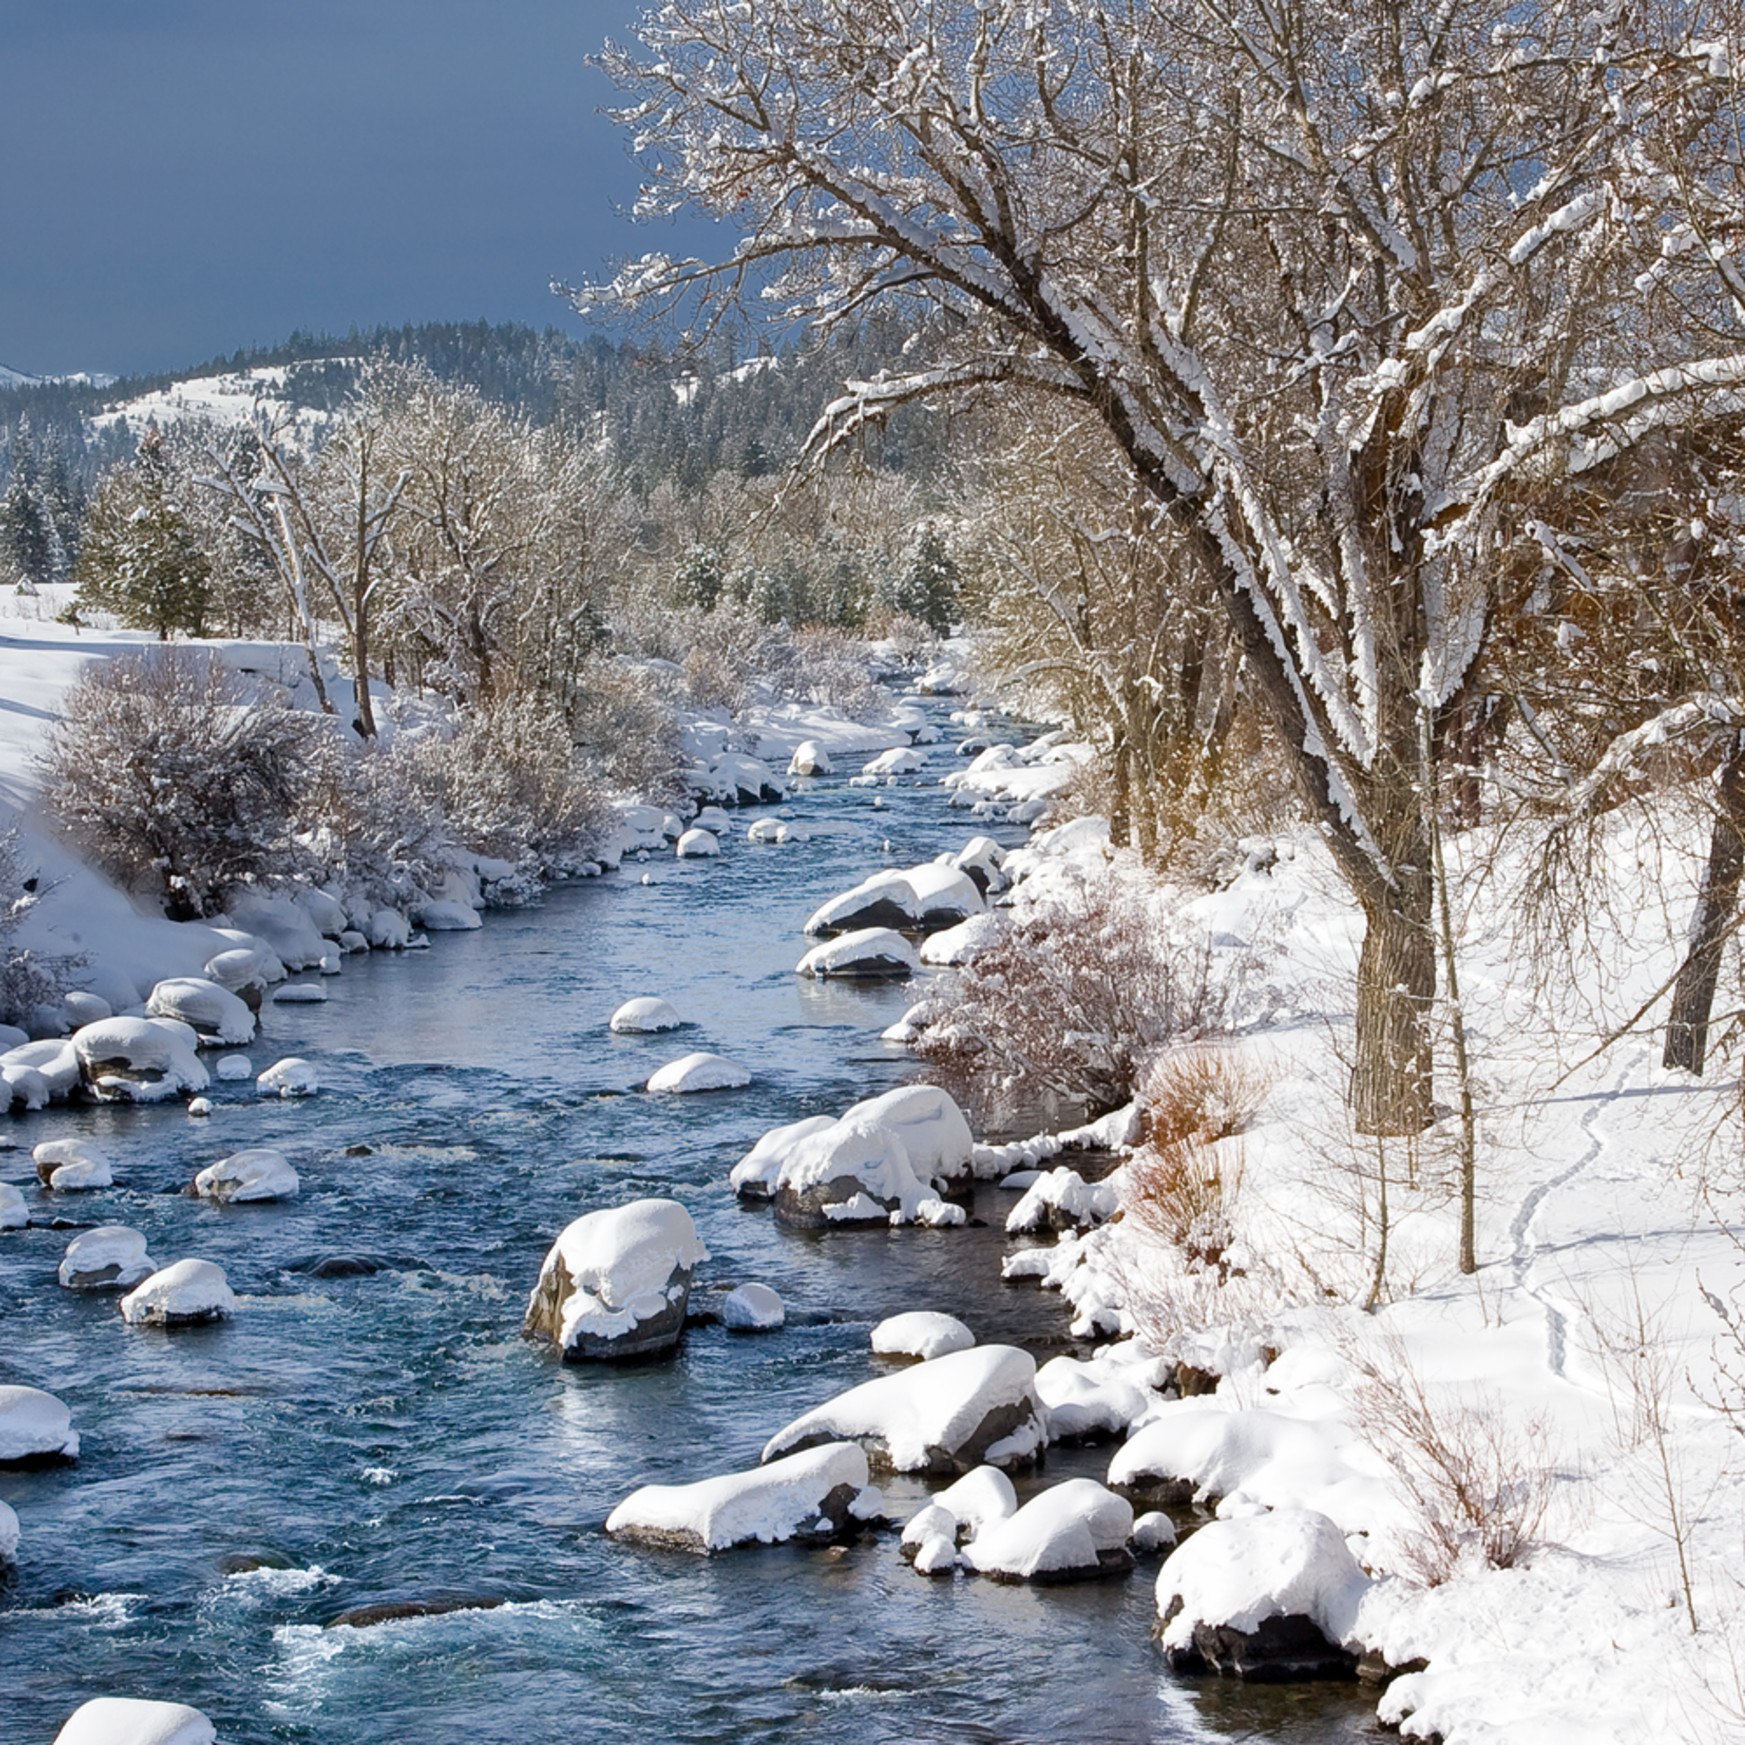 Winter morning truckee river iuc3bt